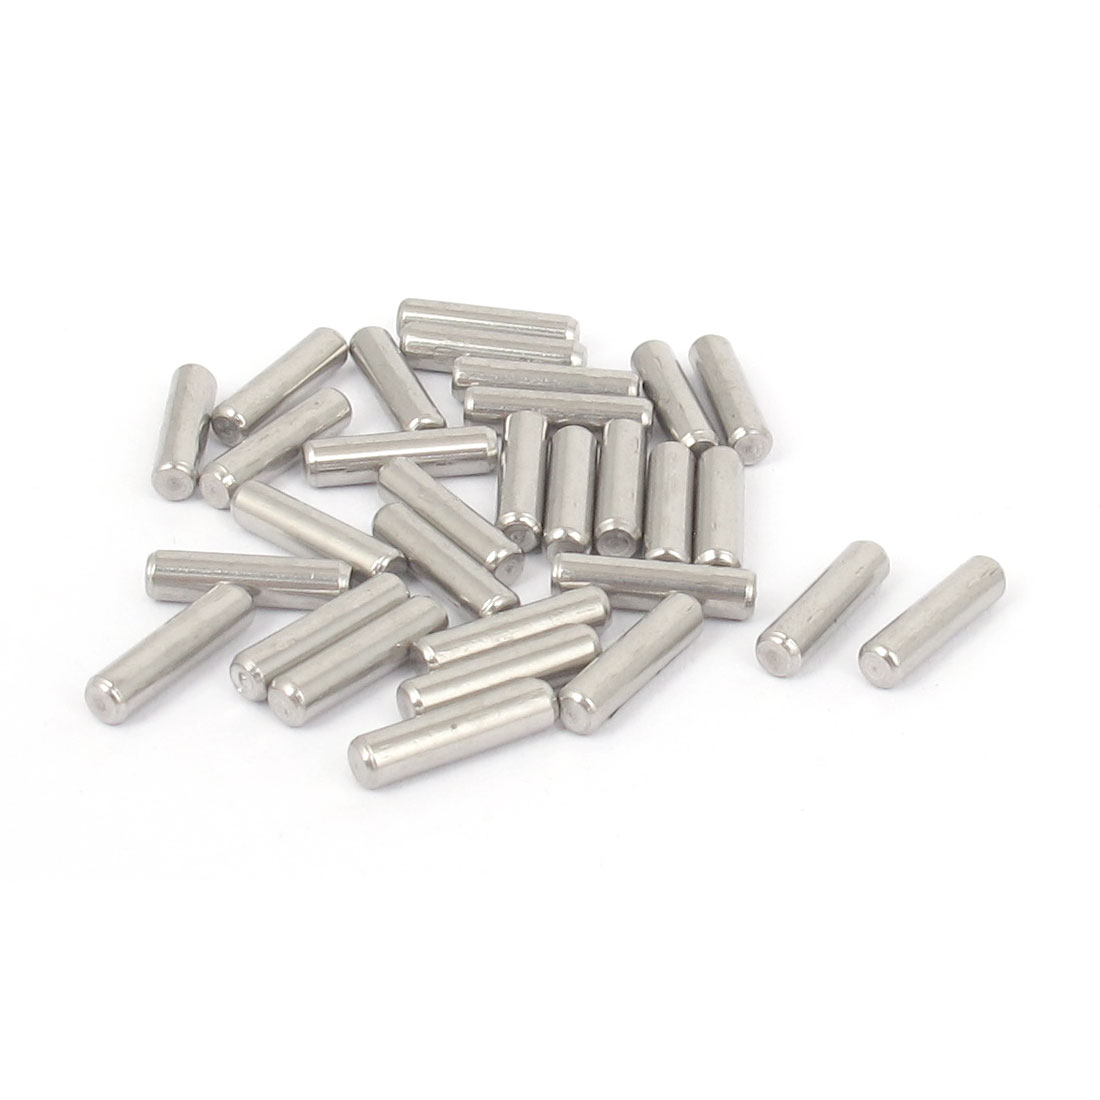 3mmx12mm 304 Stainless Steel Parallel Dowel Pins Fastener Elements 30pcs